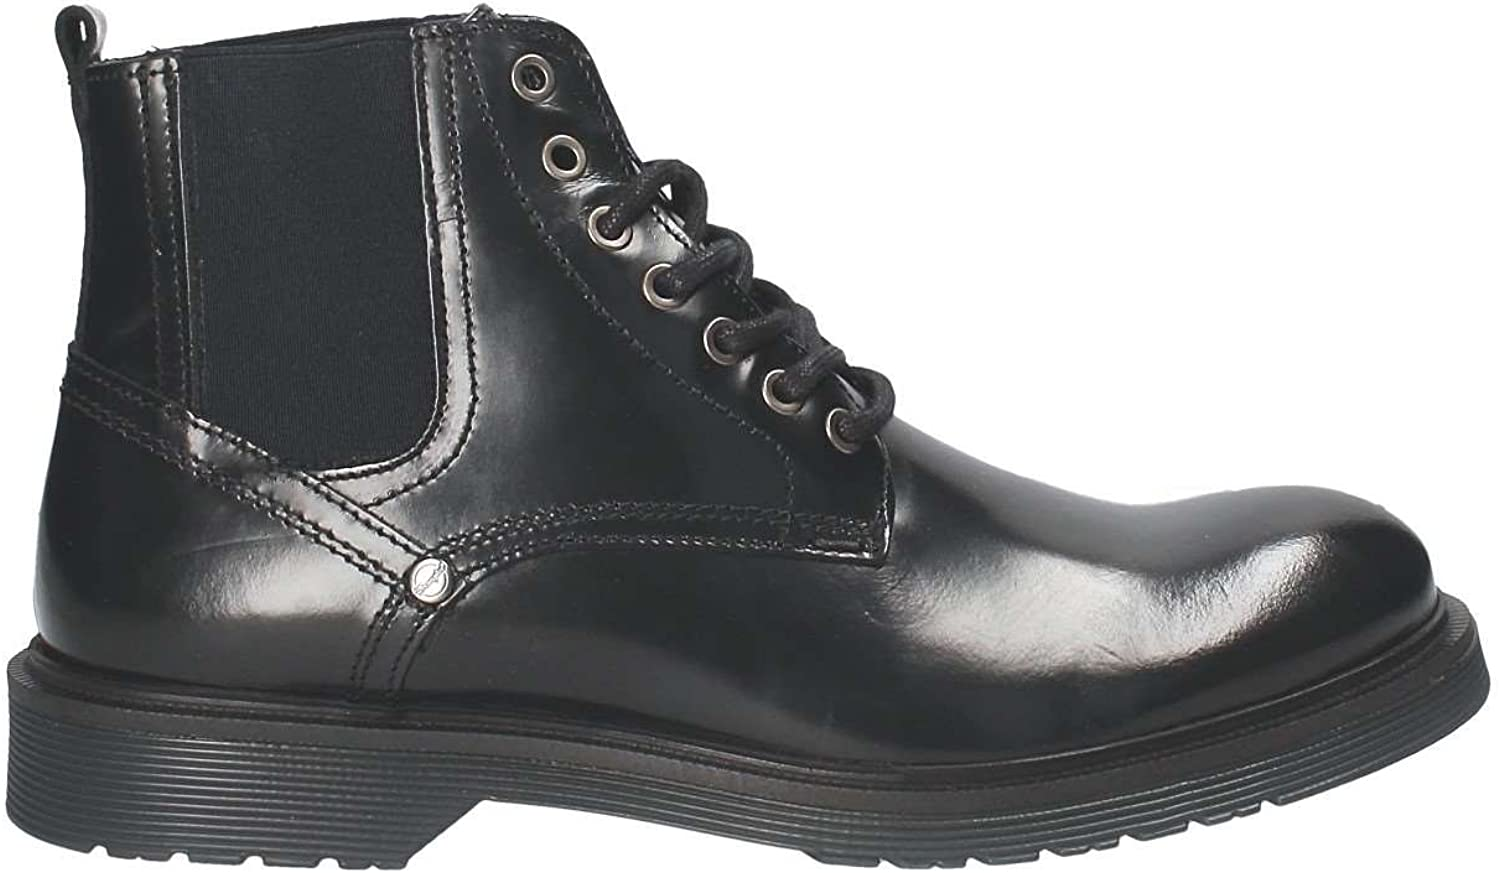 Wrangler WM172101 Ankle Boots Man